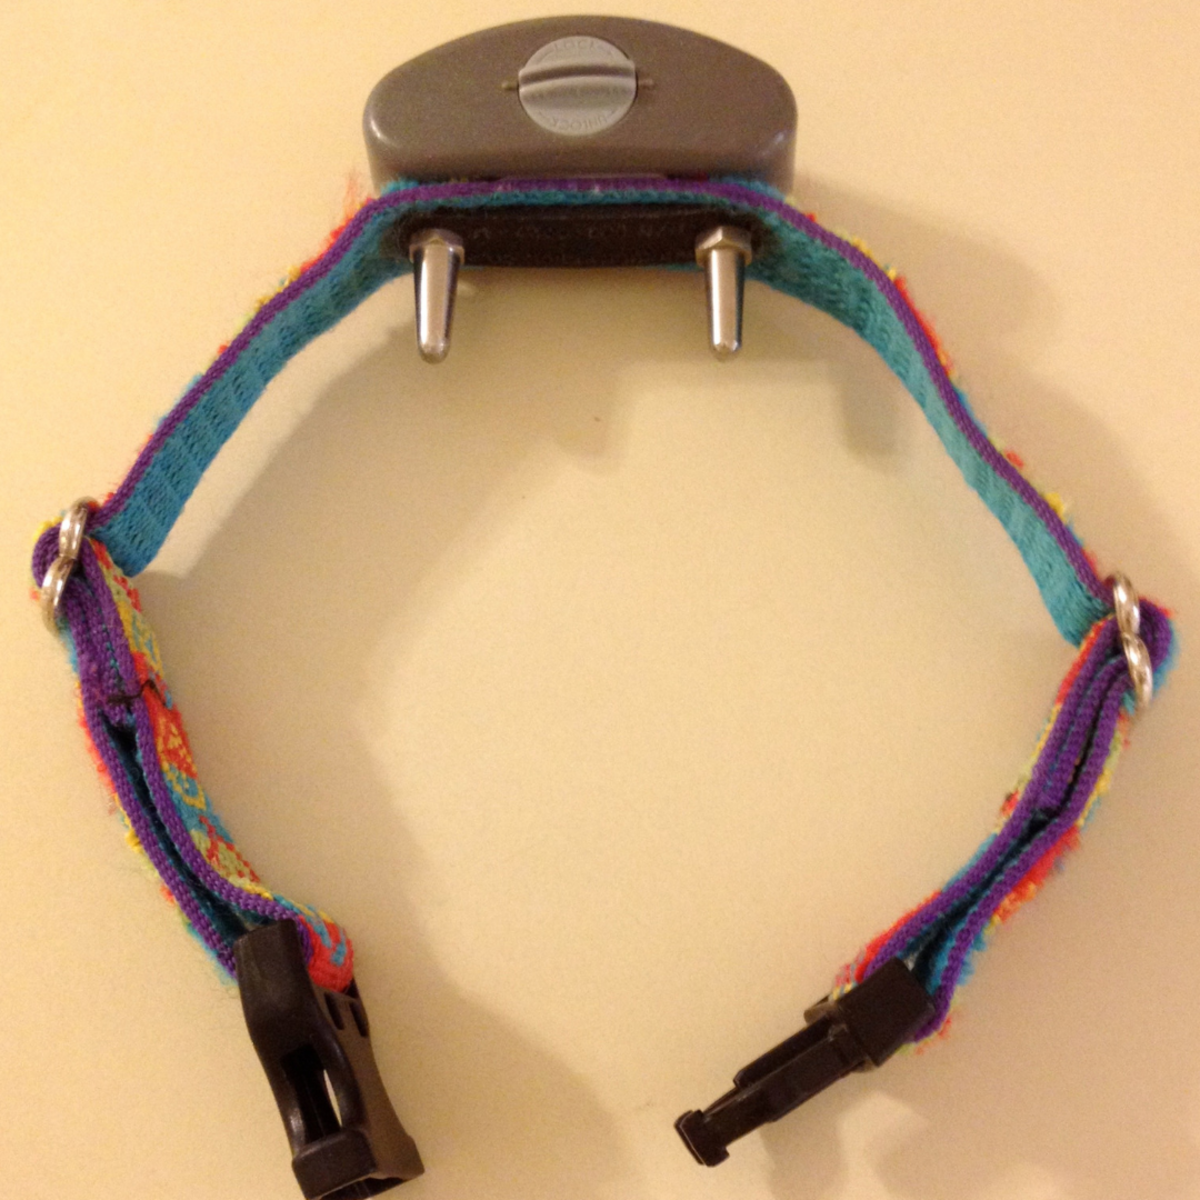 Shock collars are used to modify behavior and for containment.